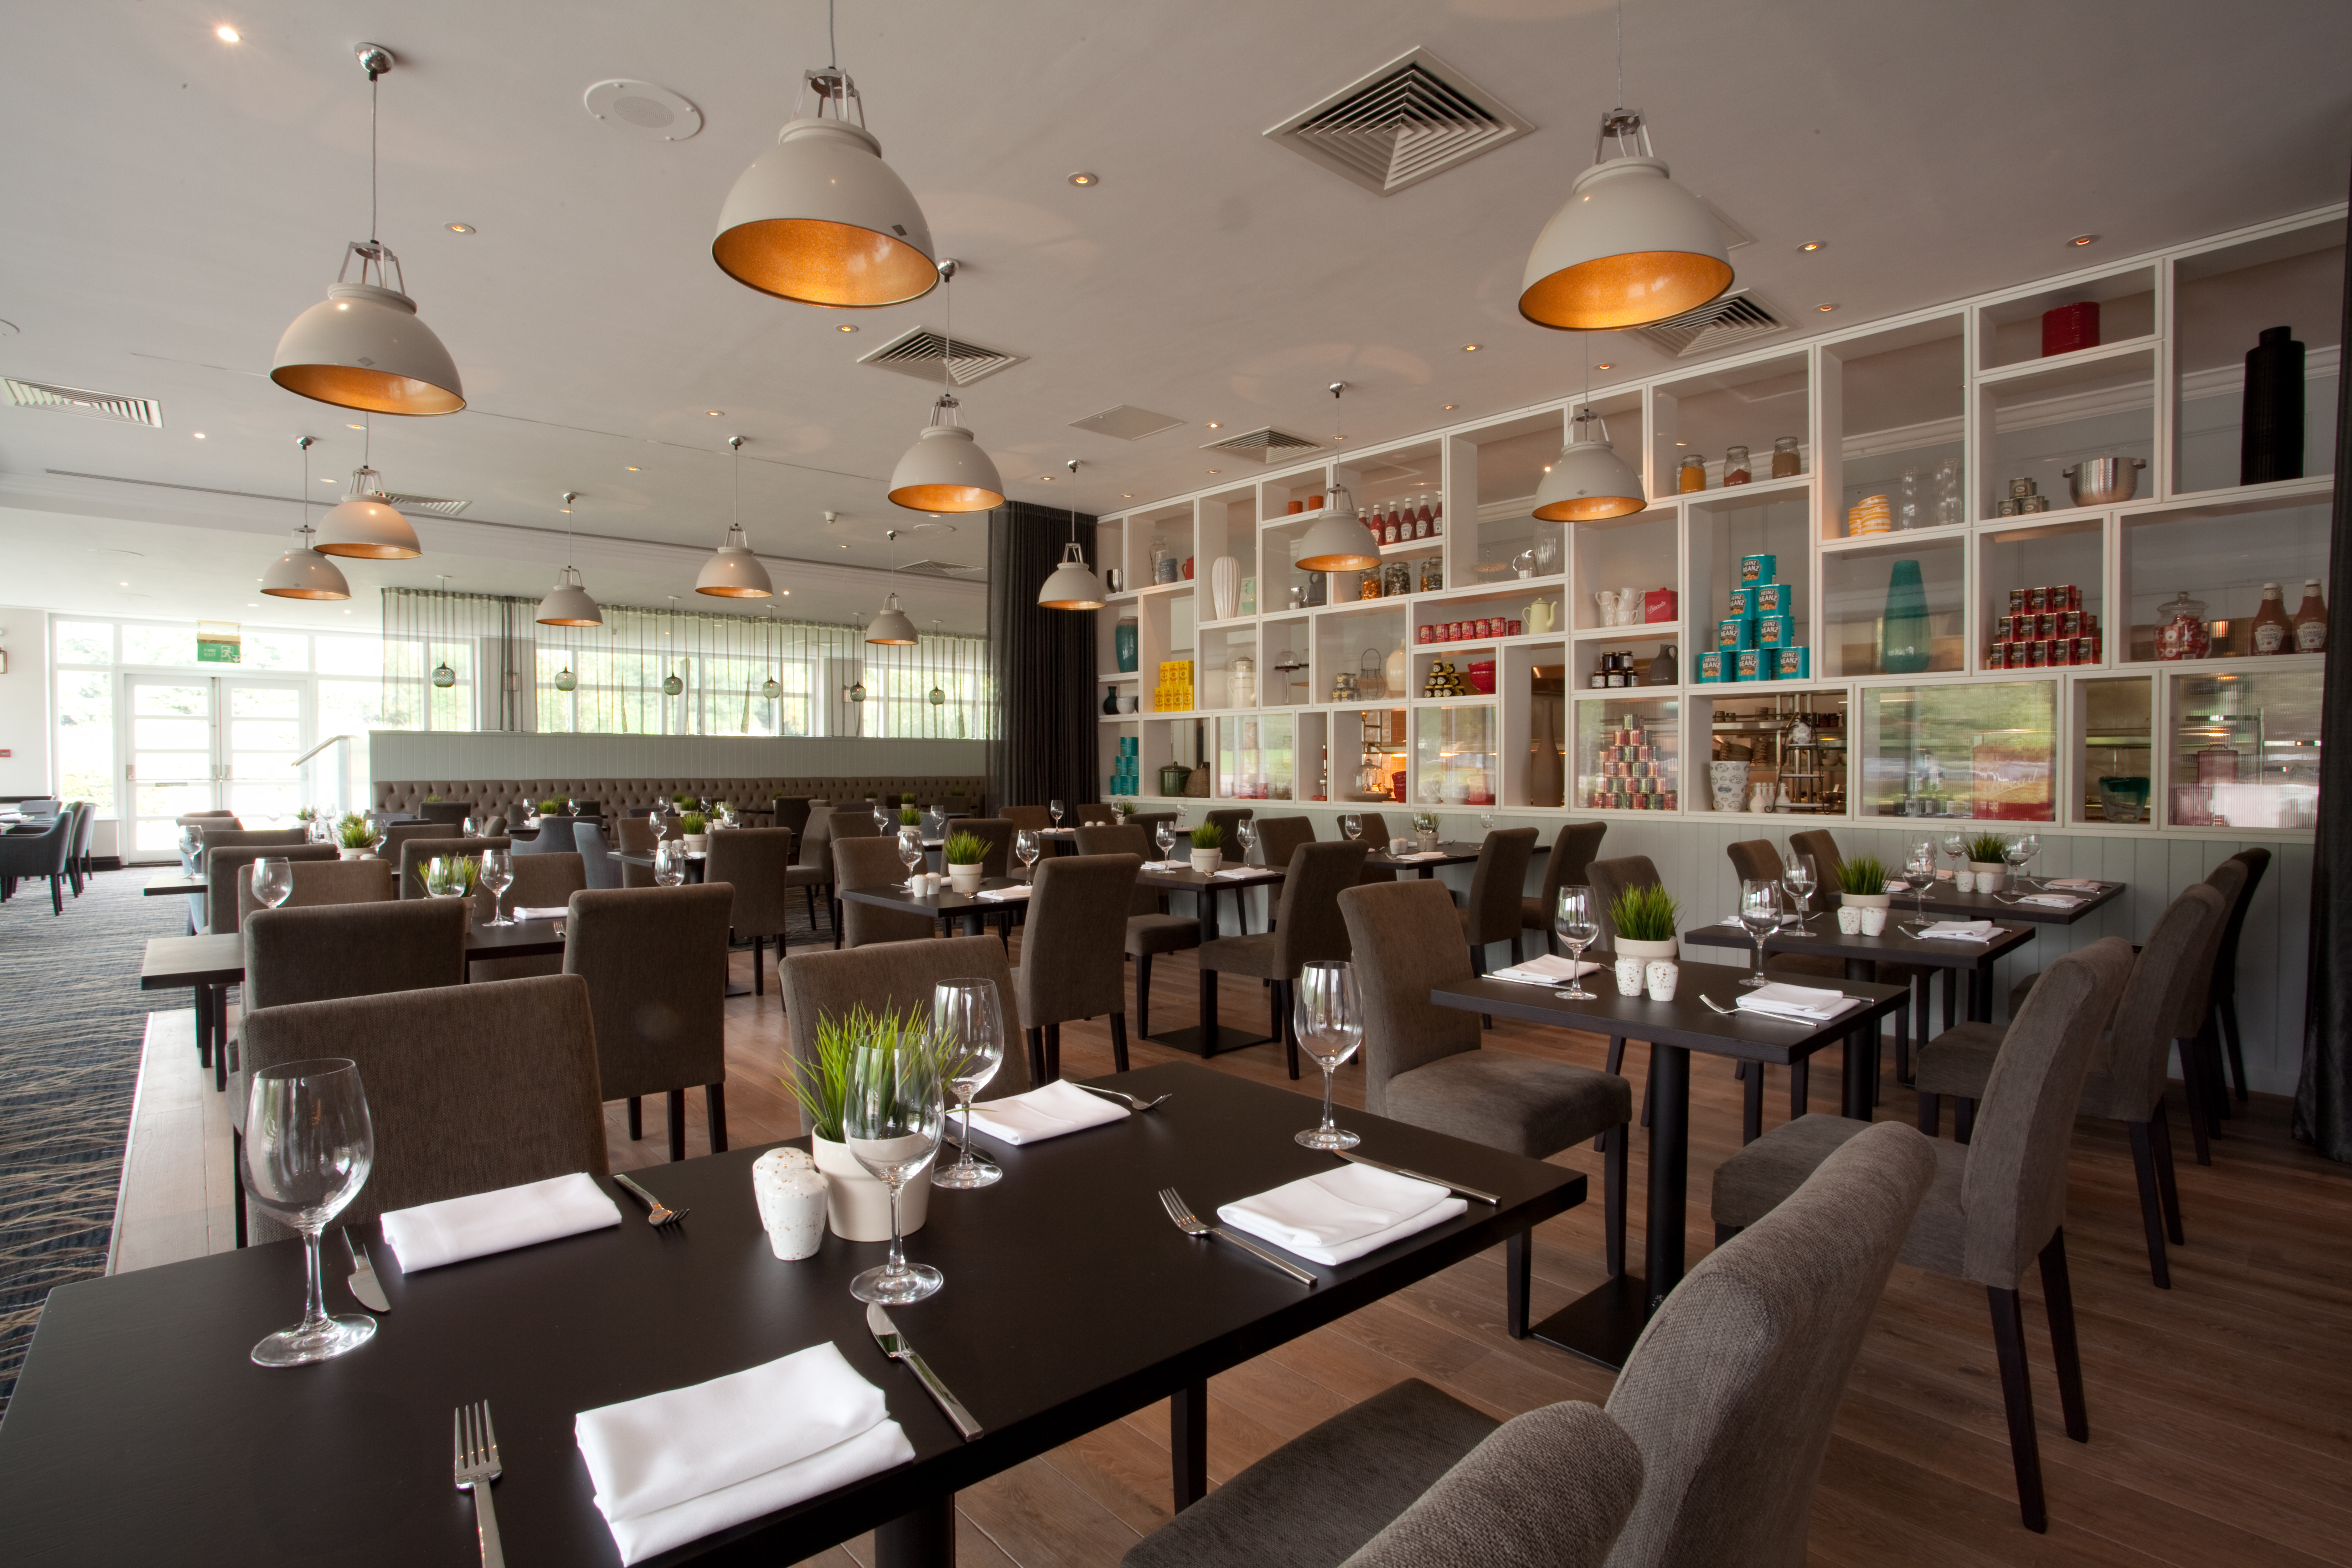 The Larder Restaurant at Hilton Coventry - Warwickshire